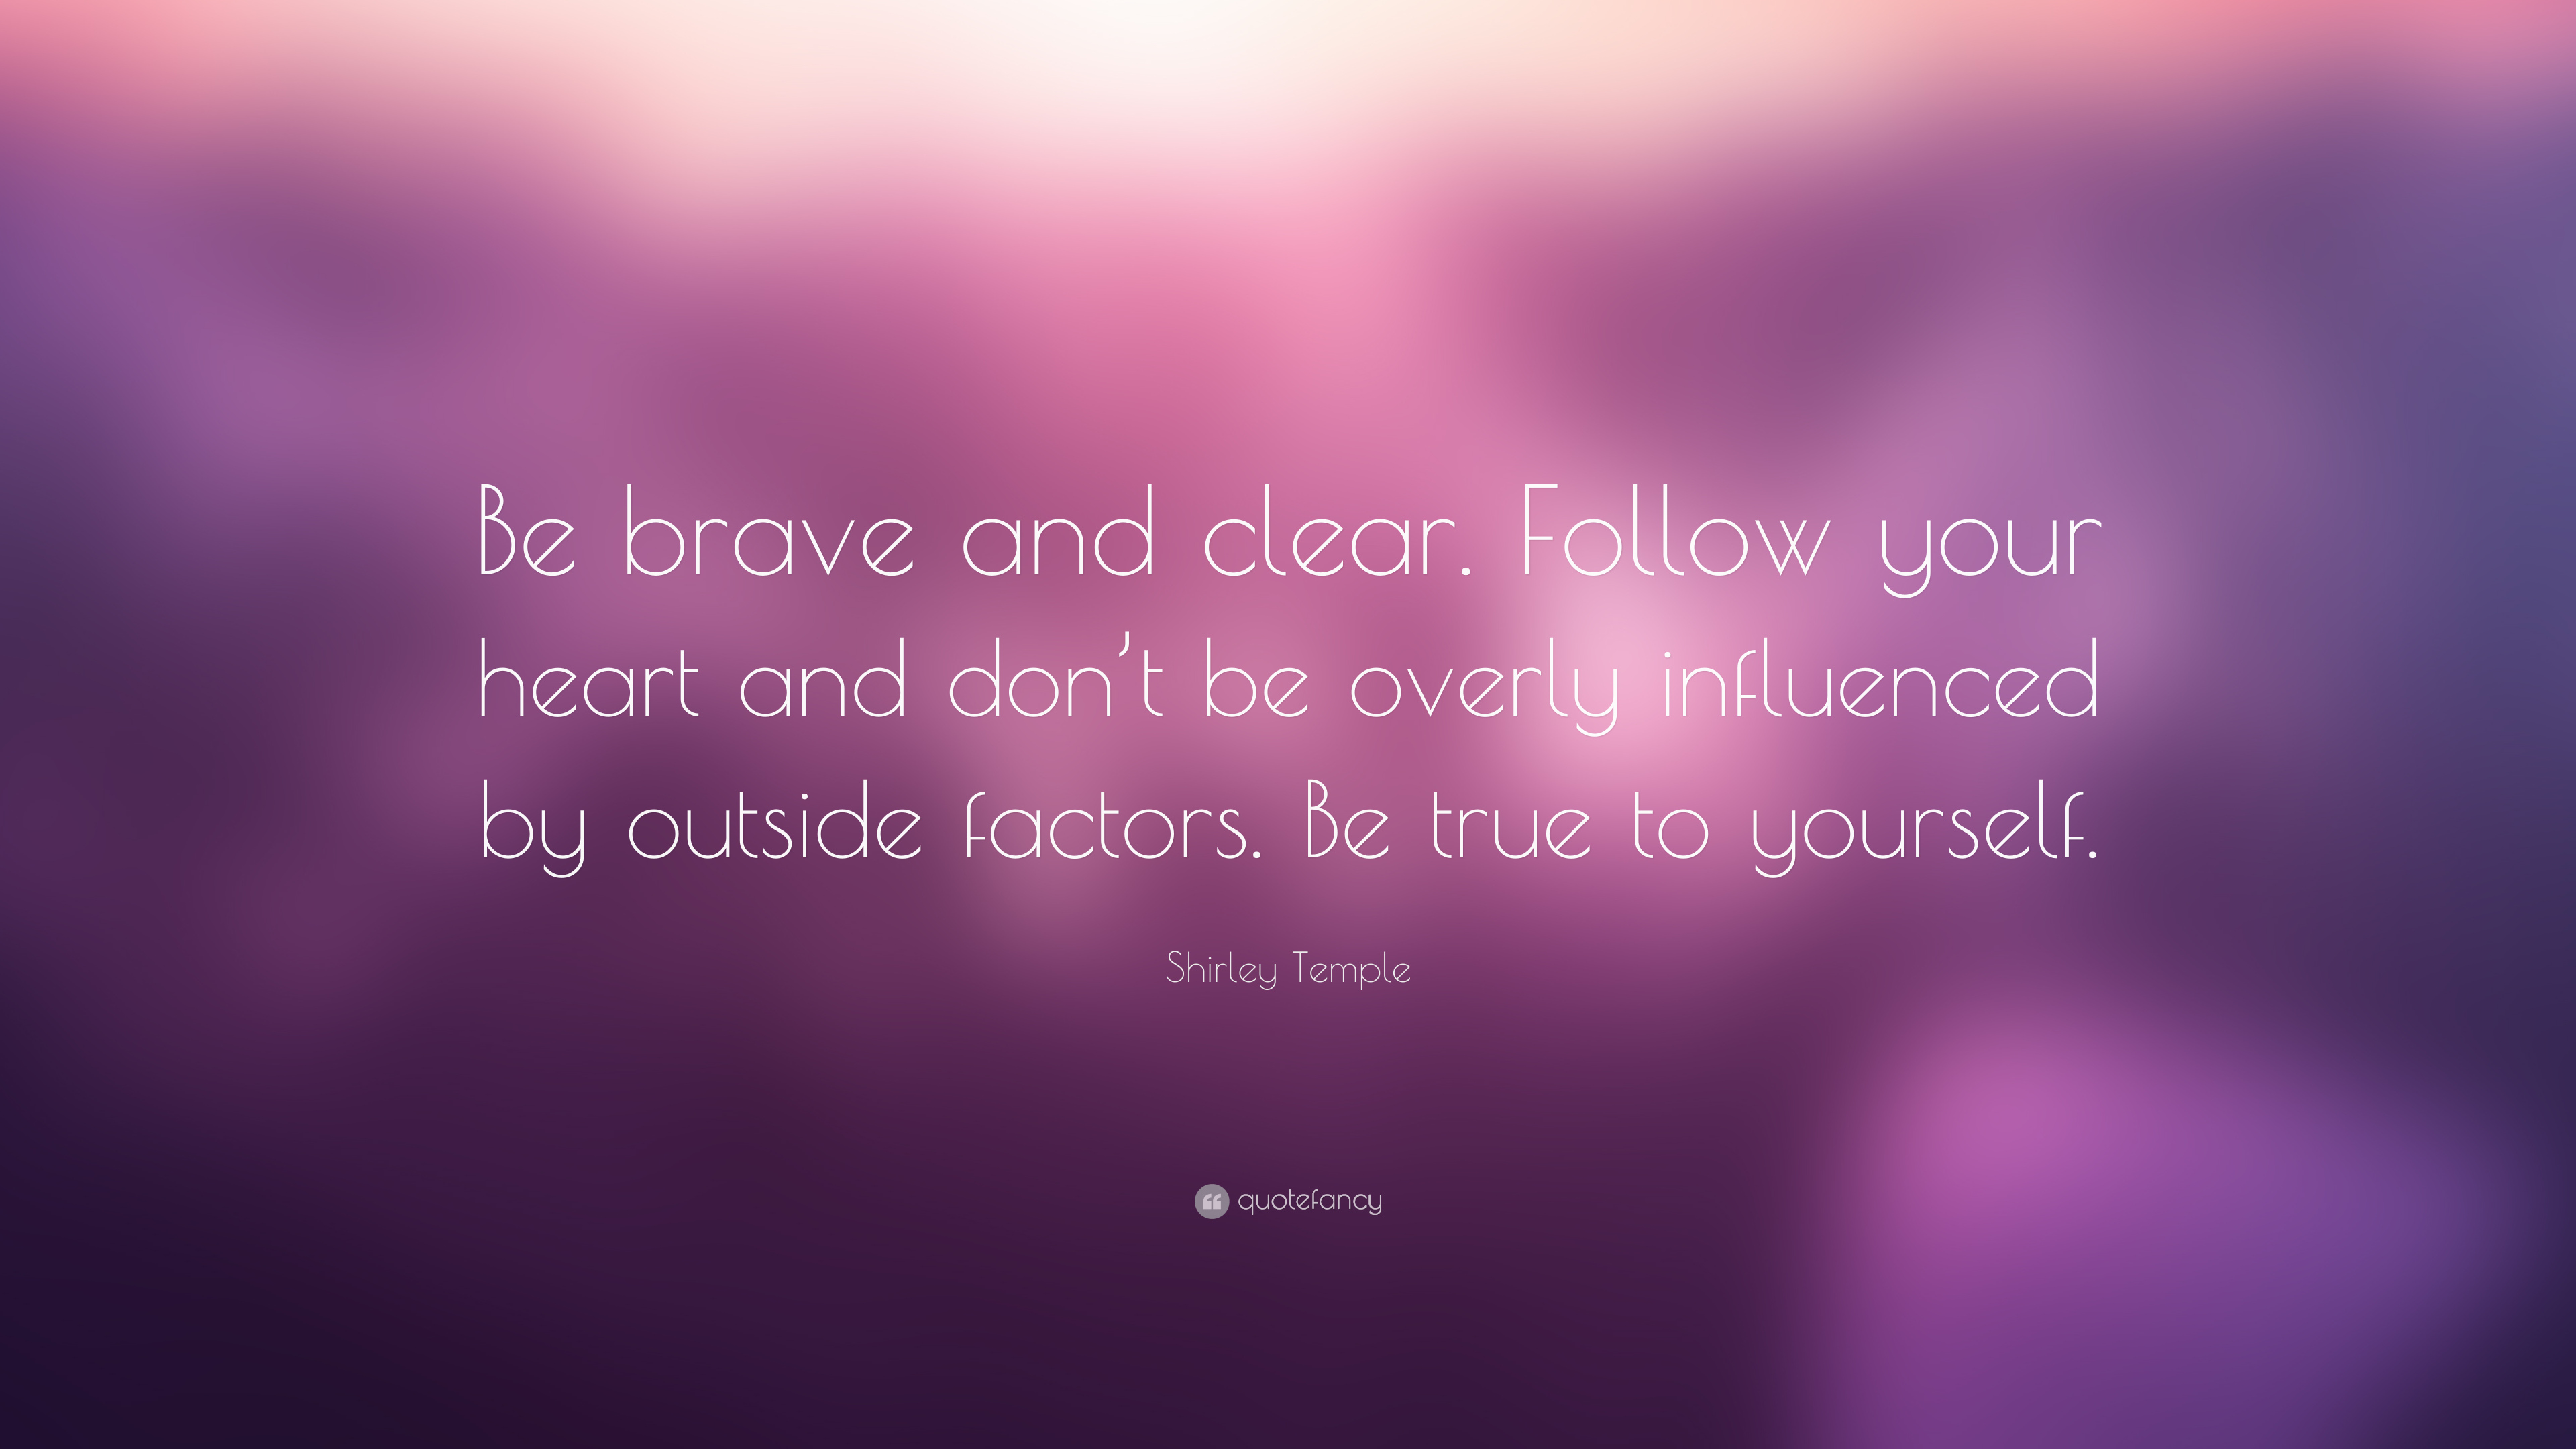 Image result for follow your heart and be true to yourself